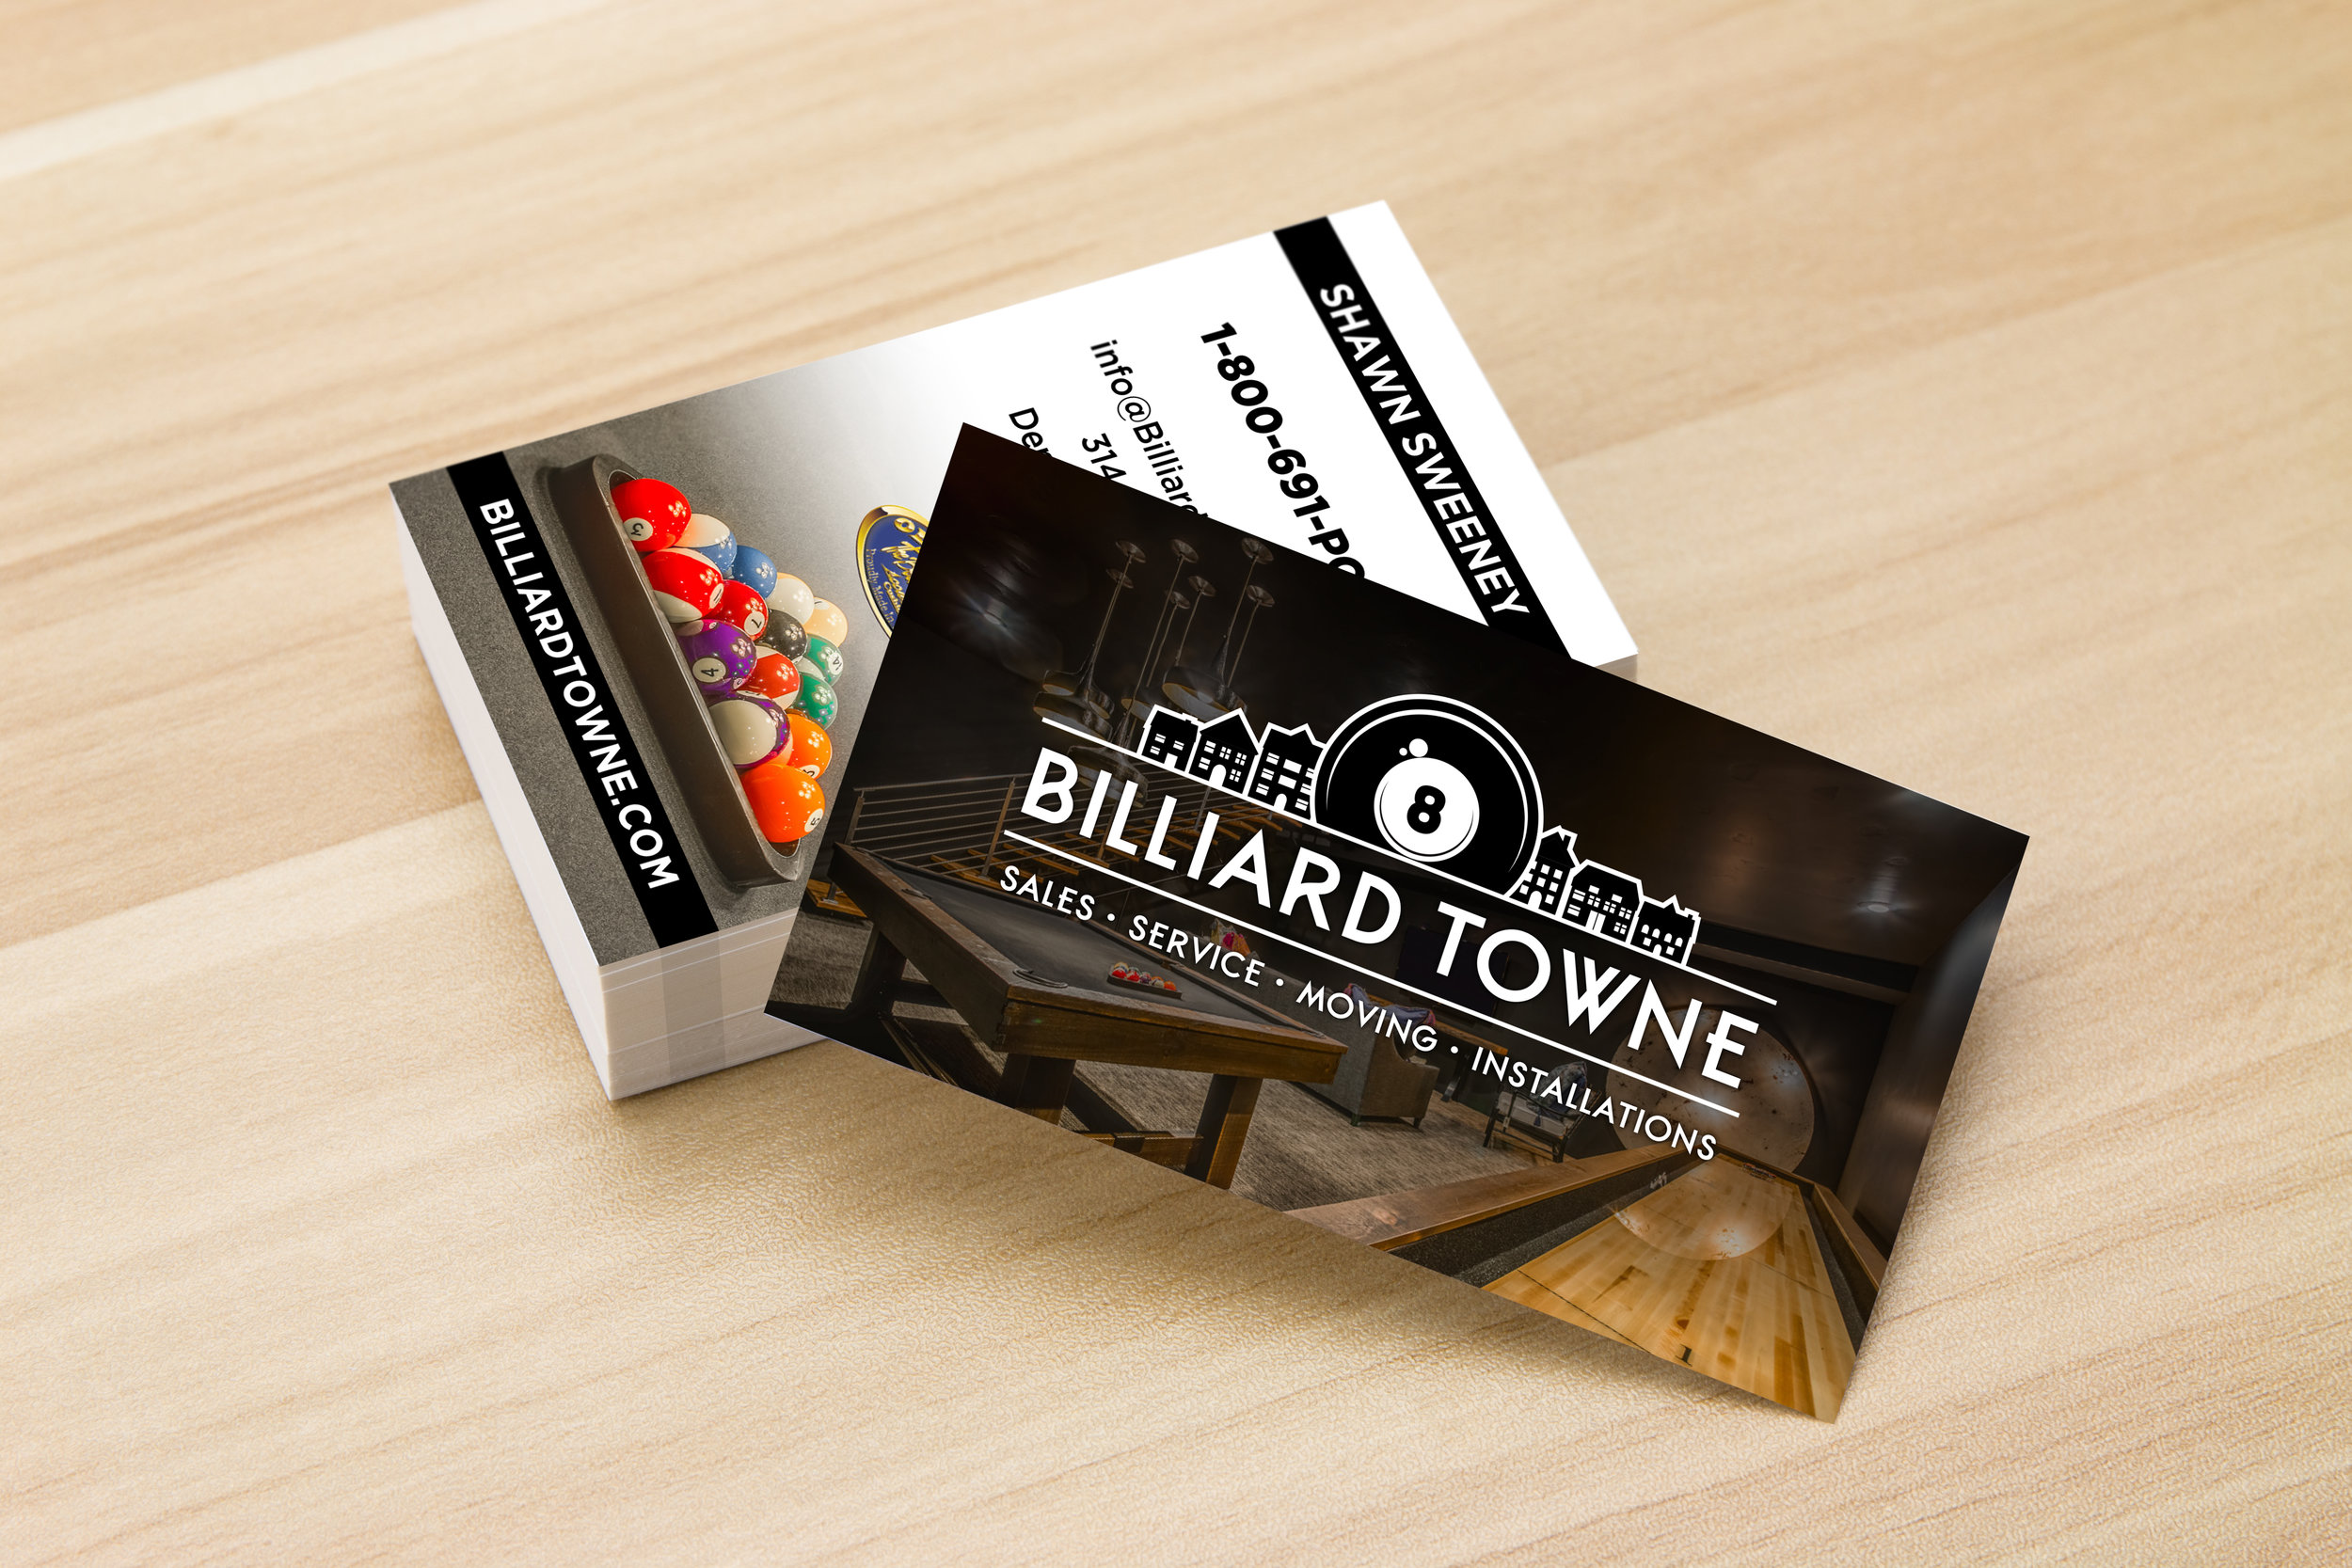 BilliardTowneBizCards.jpg